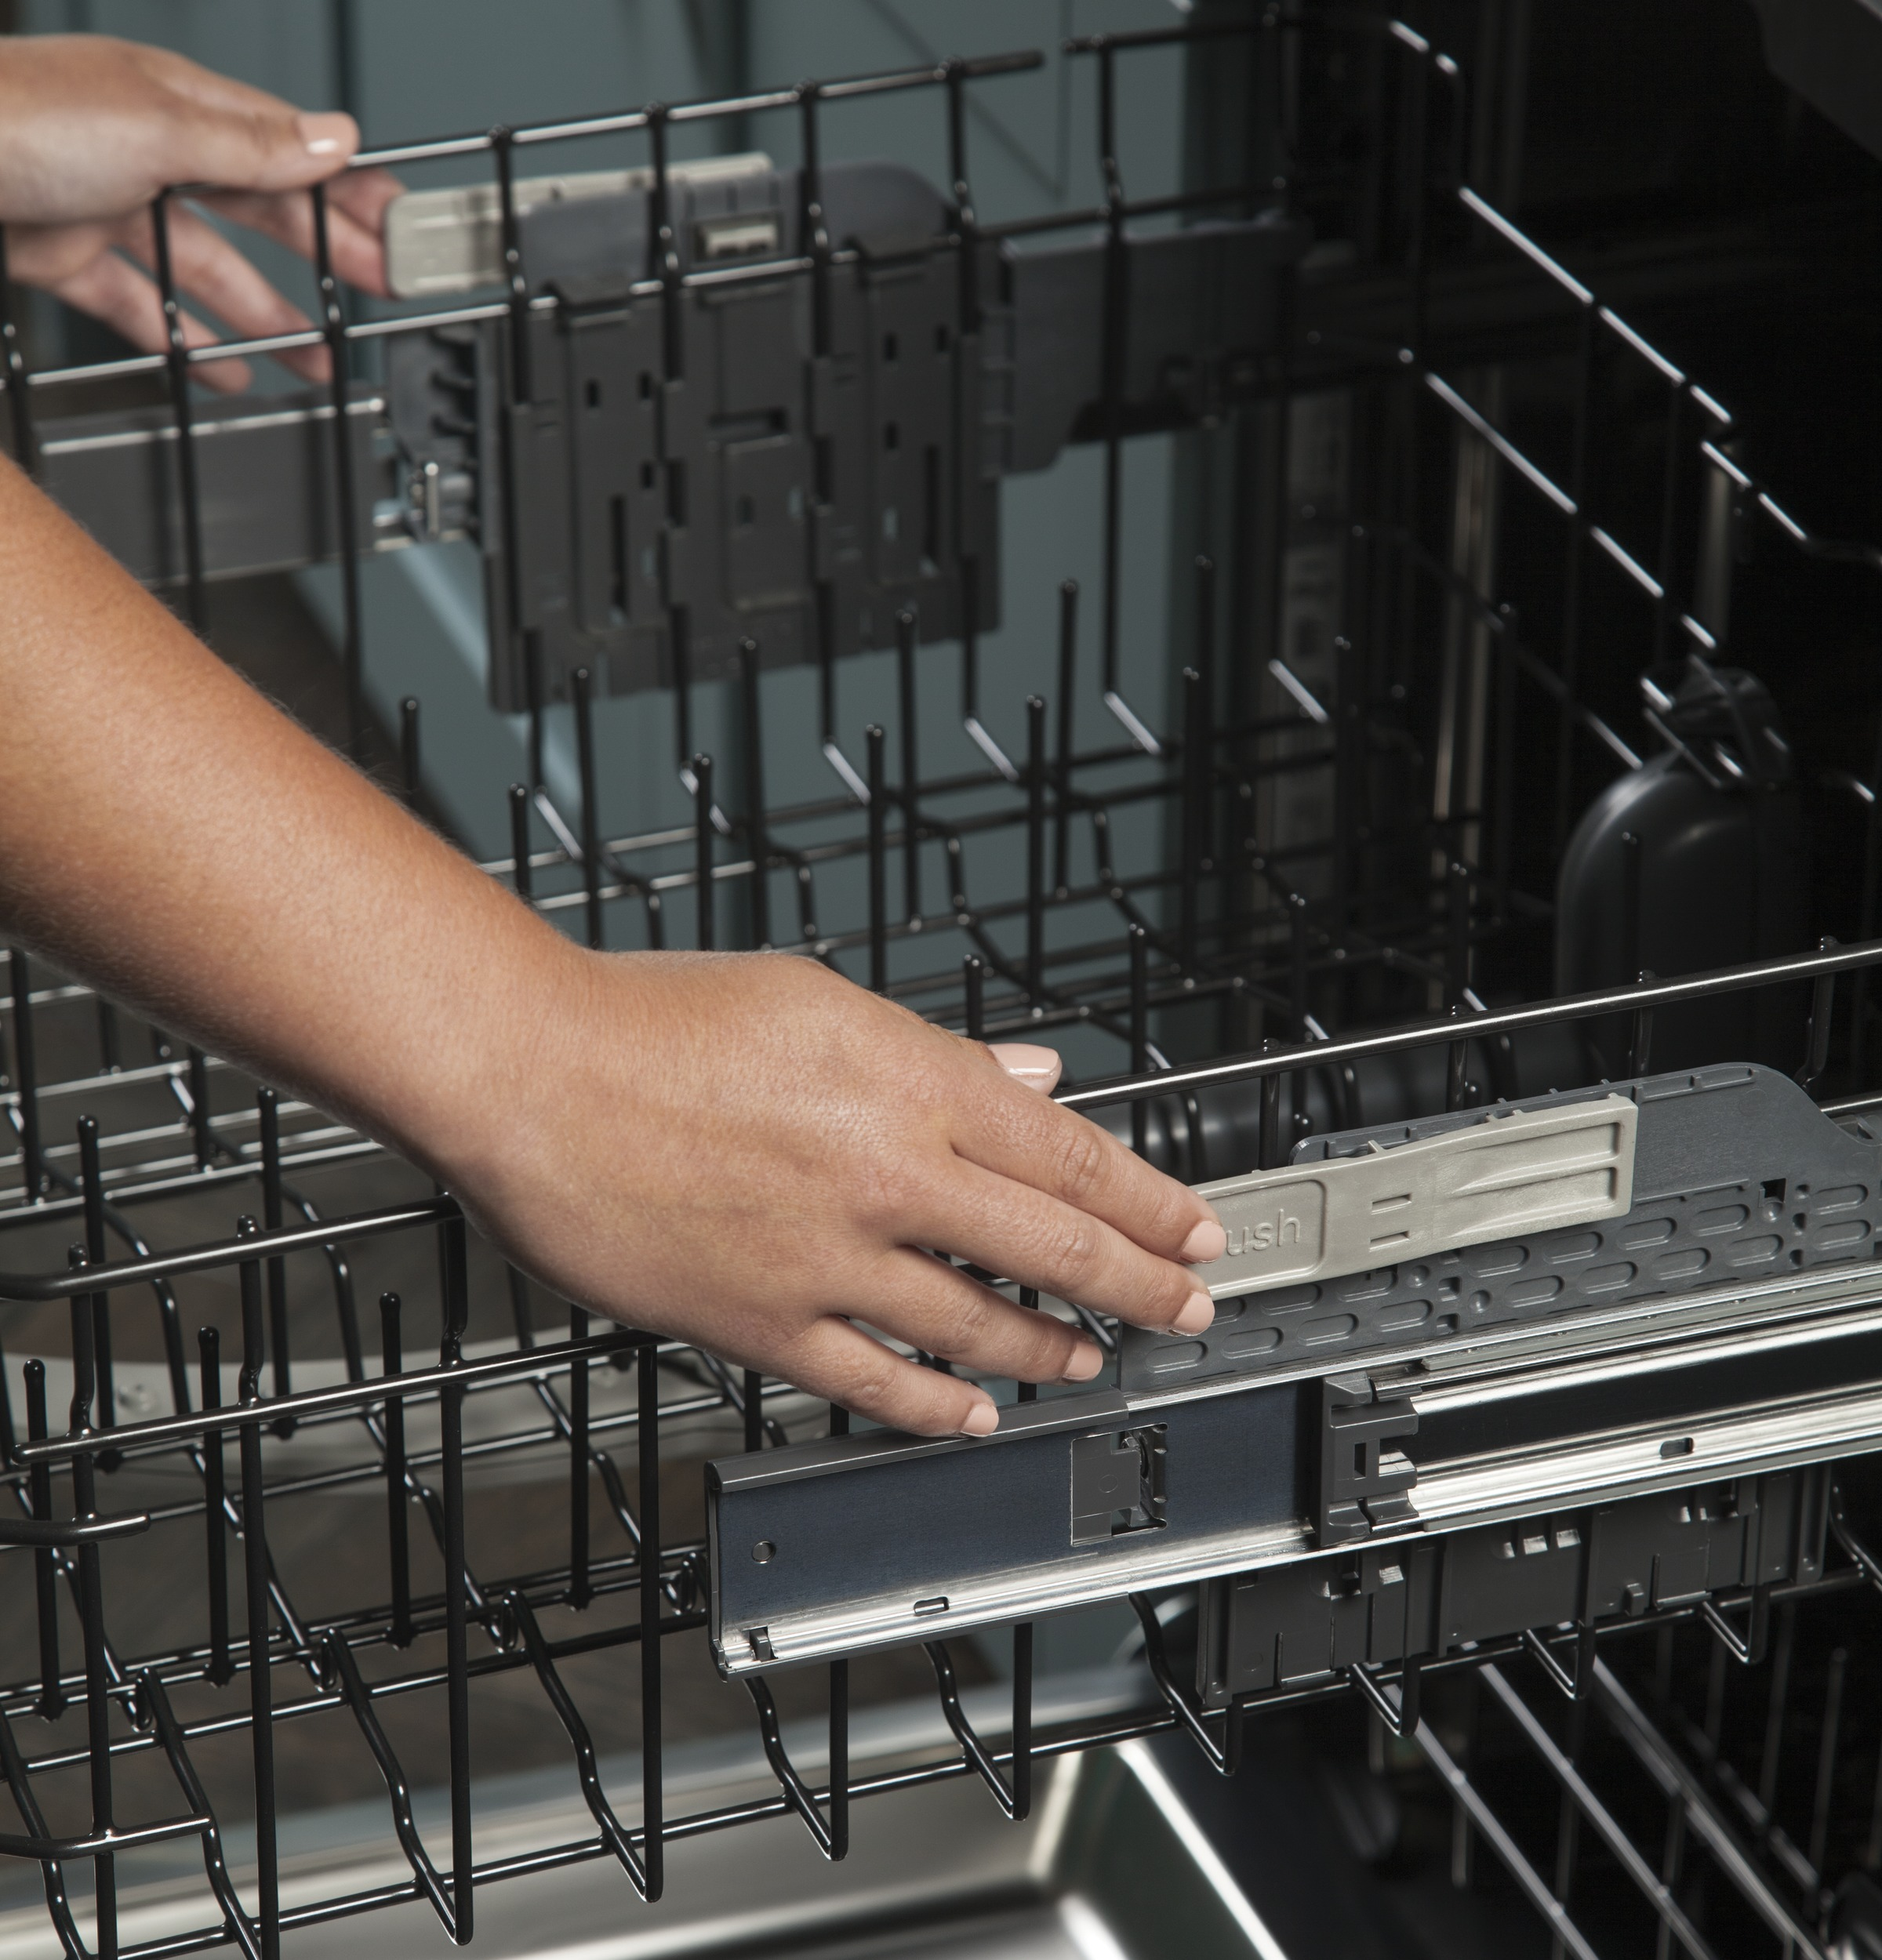 Model: PDT845SBLTS | GE Profile™ Stainless Steel Interior Dishwasher with Hidden Controls